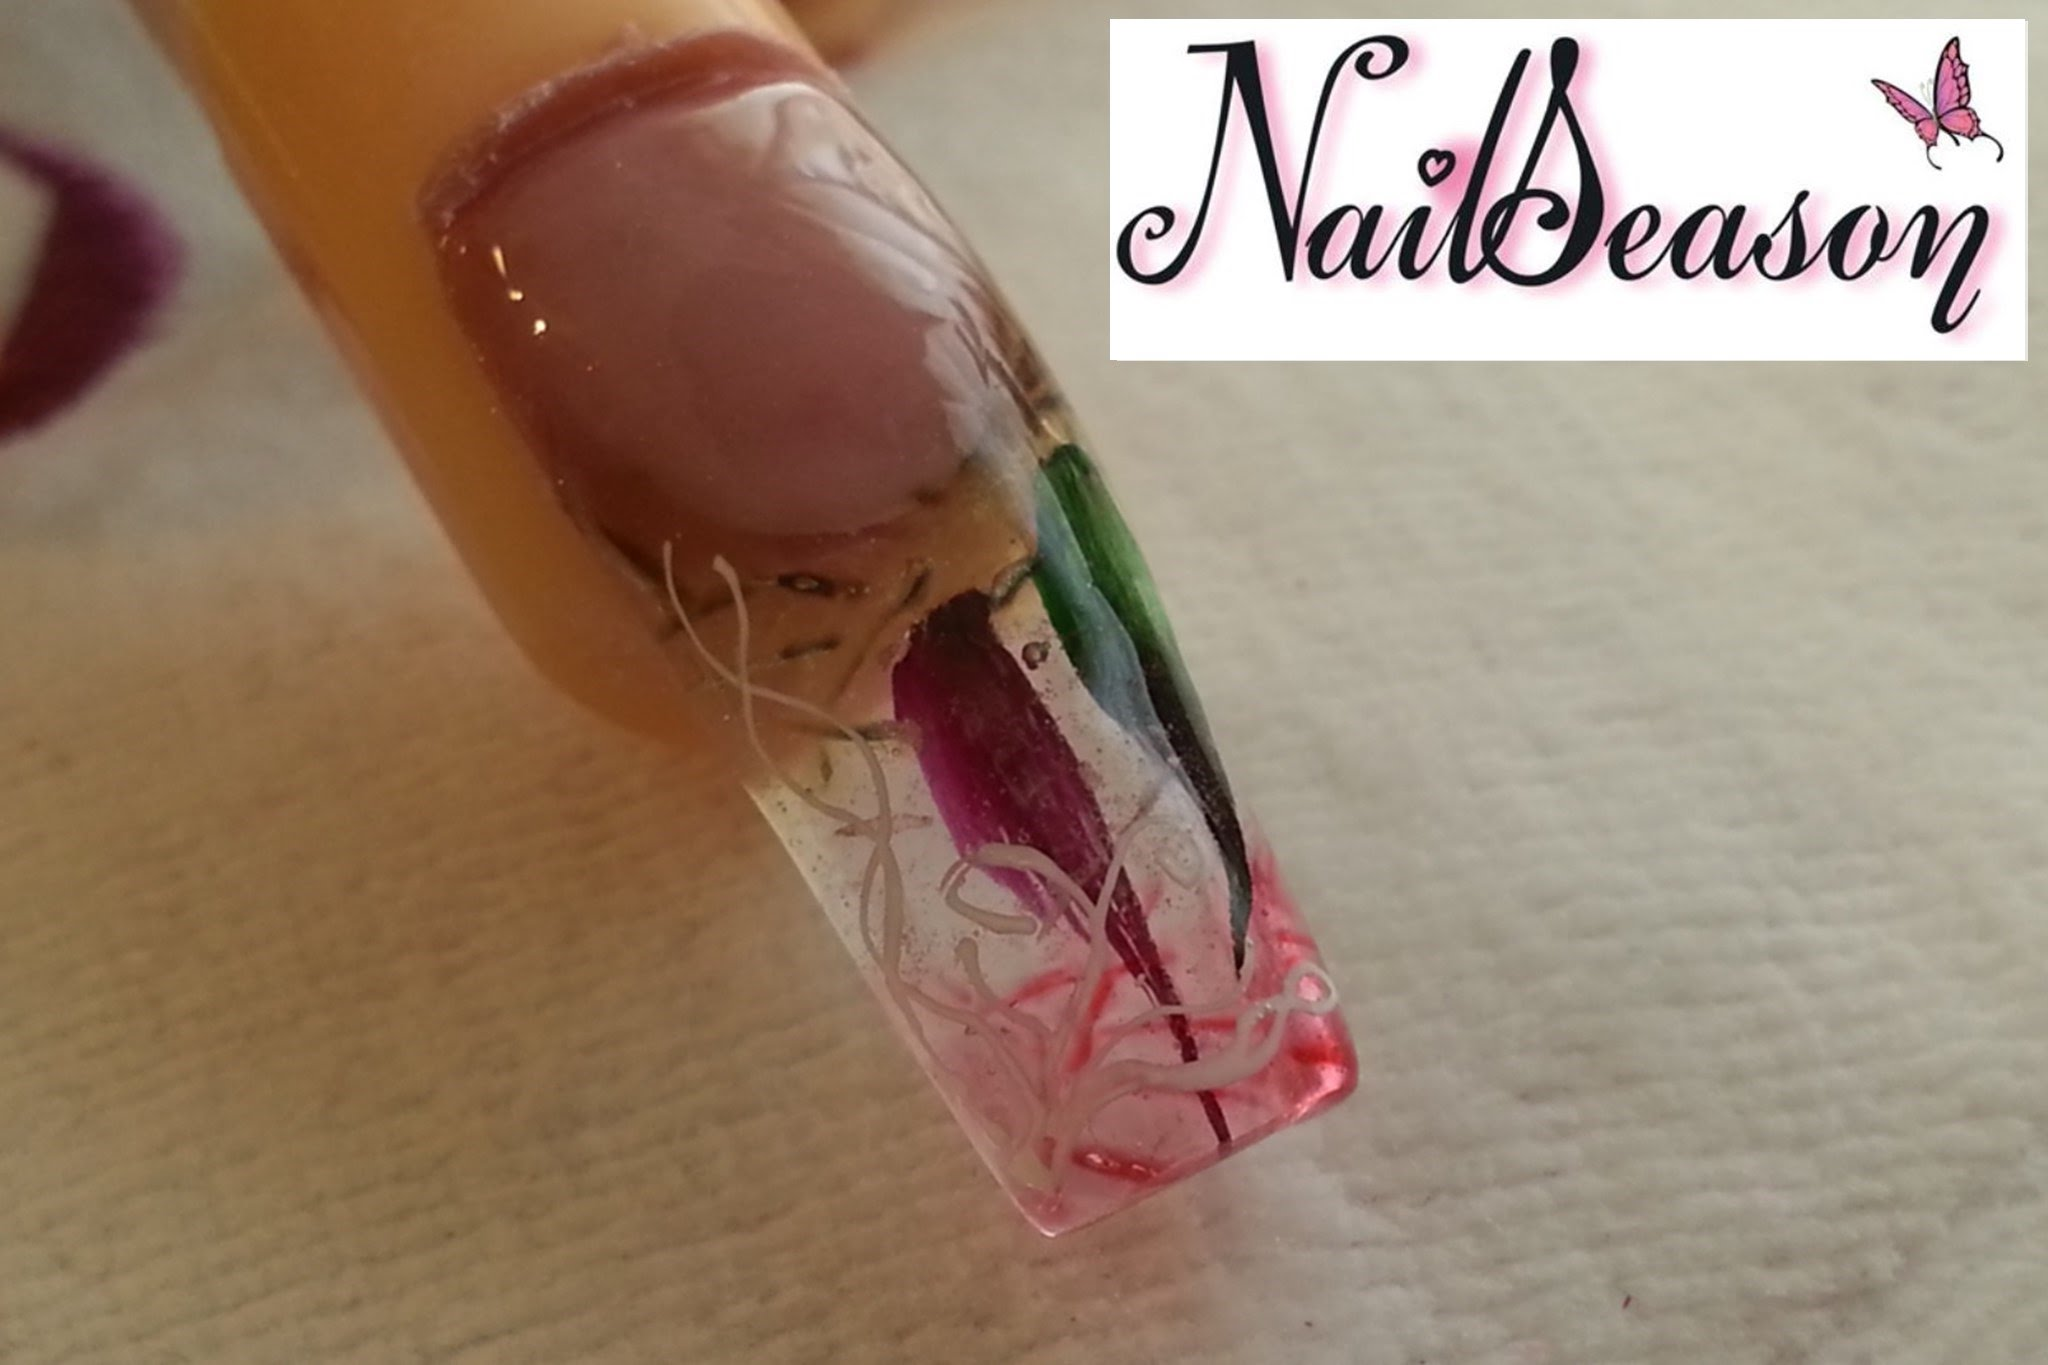 Diy acrylic nail designs clear acrylics with inset petals prinsesfo Choice Image